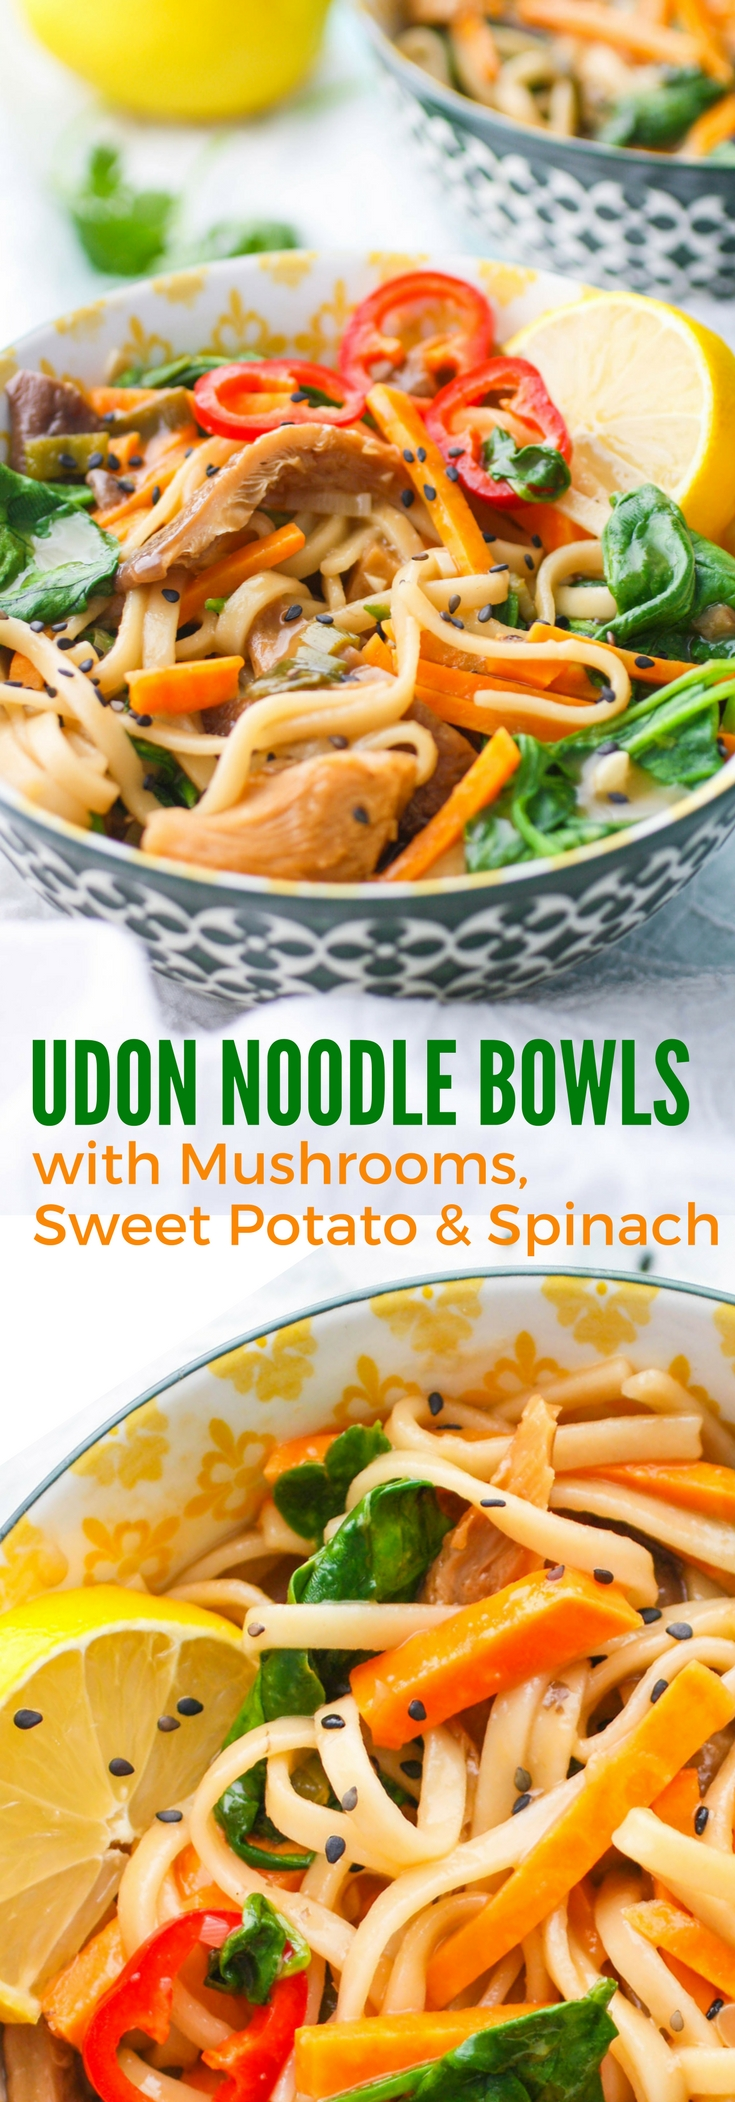 Udon Noodle Bowls with Mushroom, Sweet Potato & Spinach make a wonderful meal any night of the week. You'll love these Udon Noodle Bowls with Mushroom, Sweet Potato & Spinach.